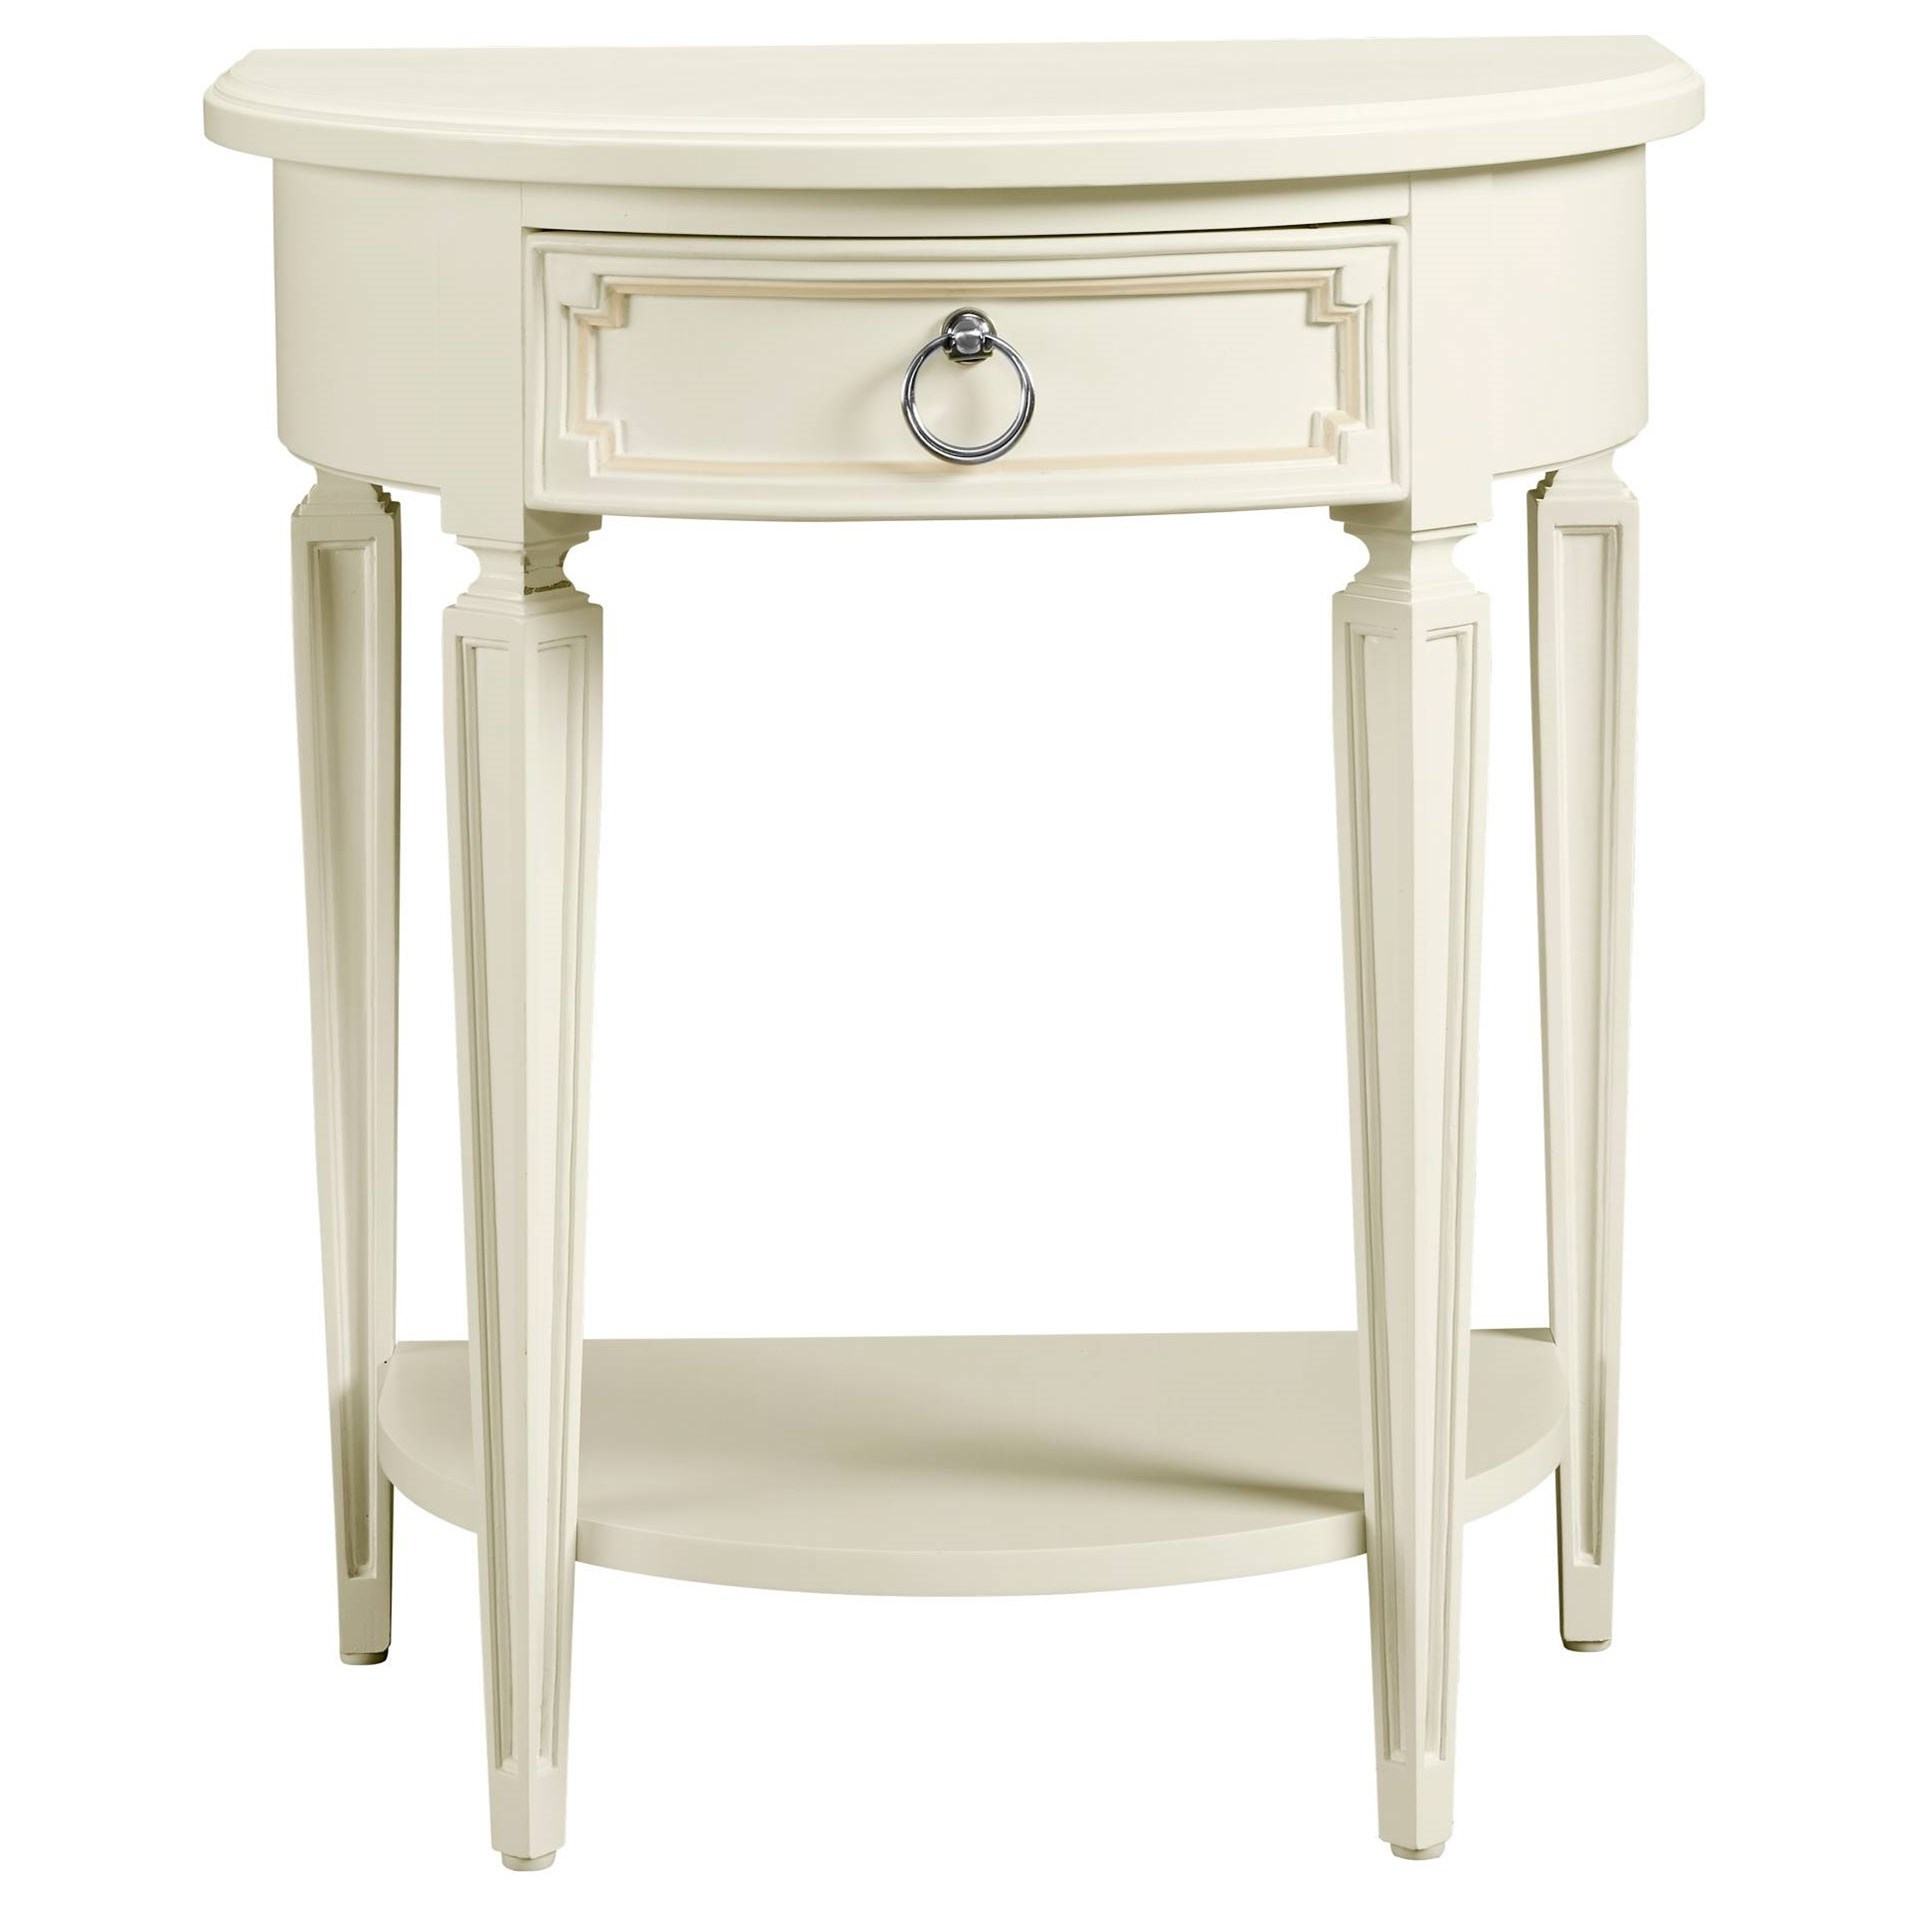 Stone & Leigh Furniture Clementine Court Bedside Table - Item Number: 537-23-80